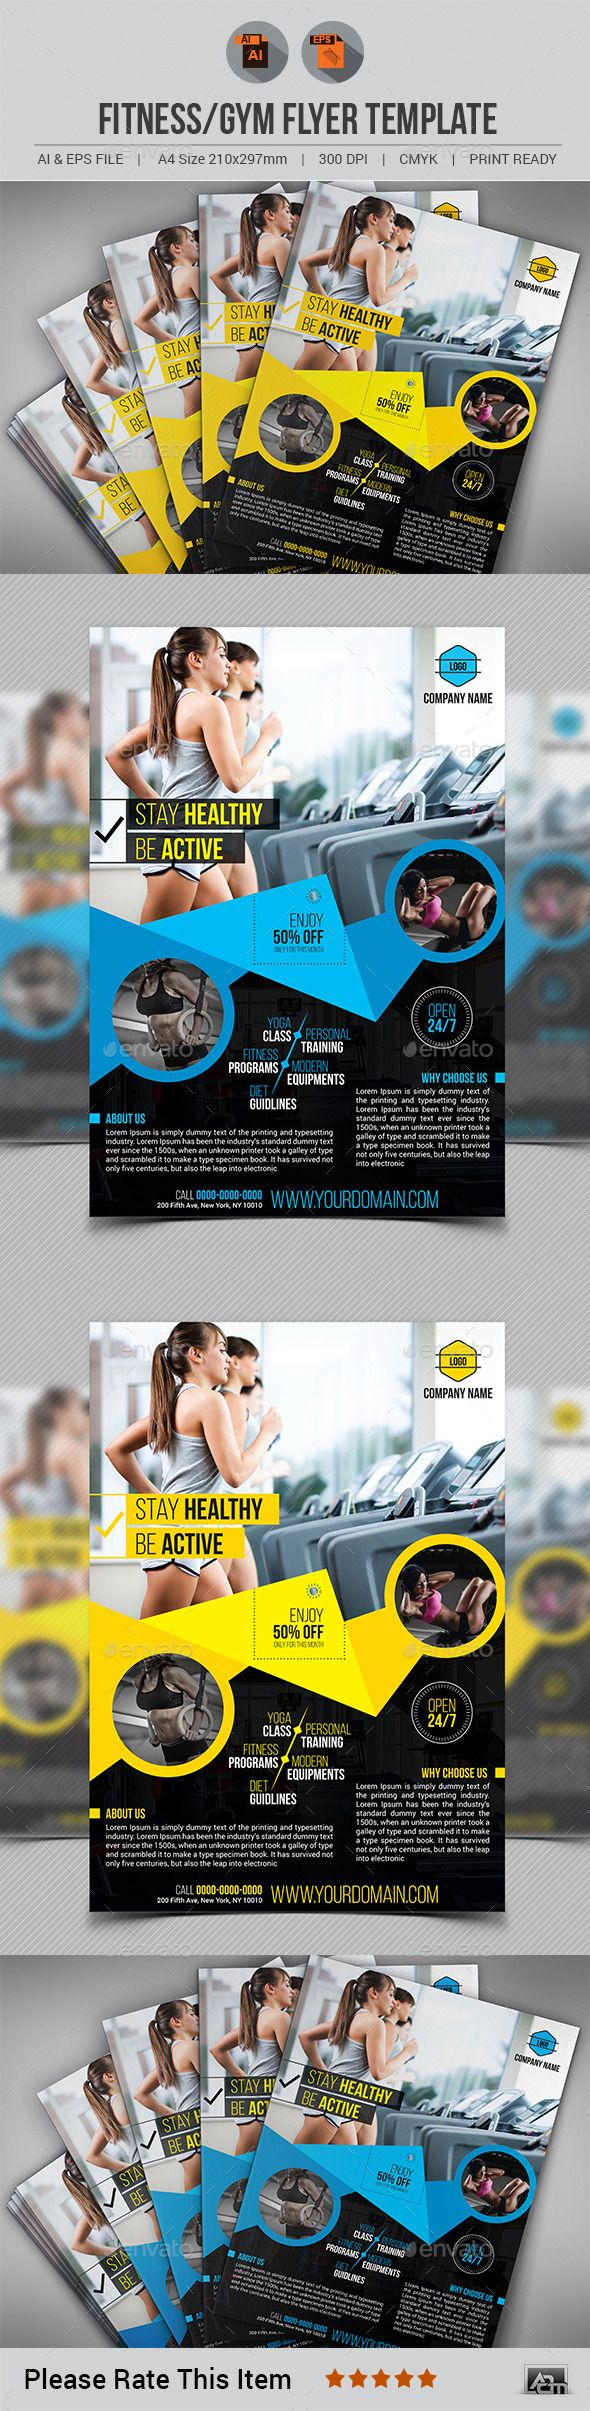 Fitness/Gym Flyer Vector Template EPs, AI #design Download: http://graphicriver.net/item/fitnessgym-flyer-template-v10/13648175?ref=ksioks